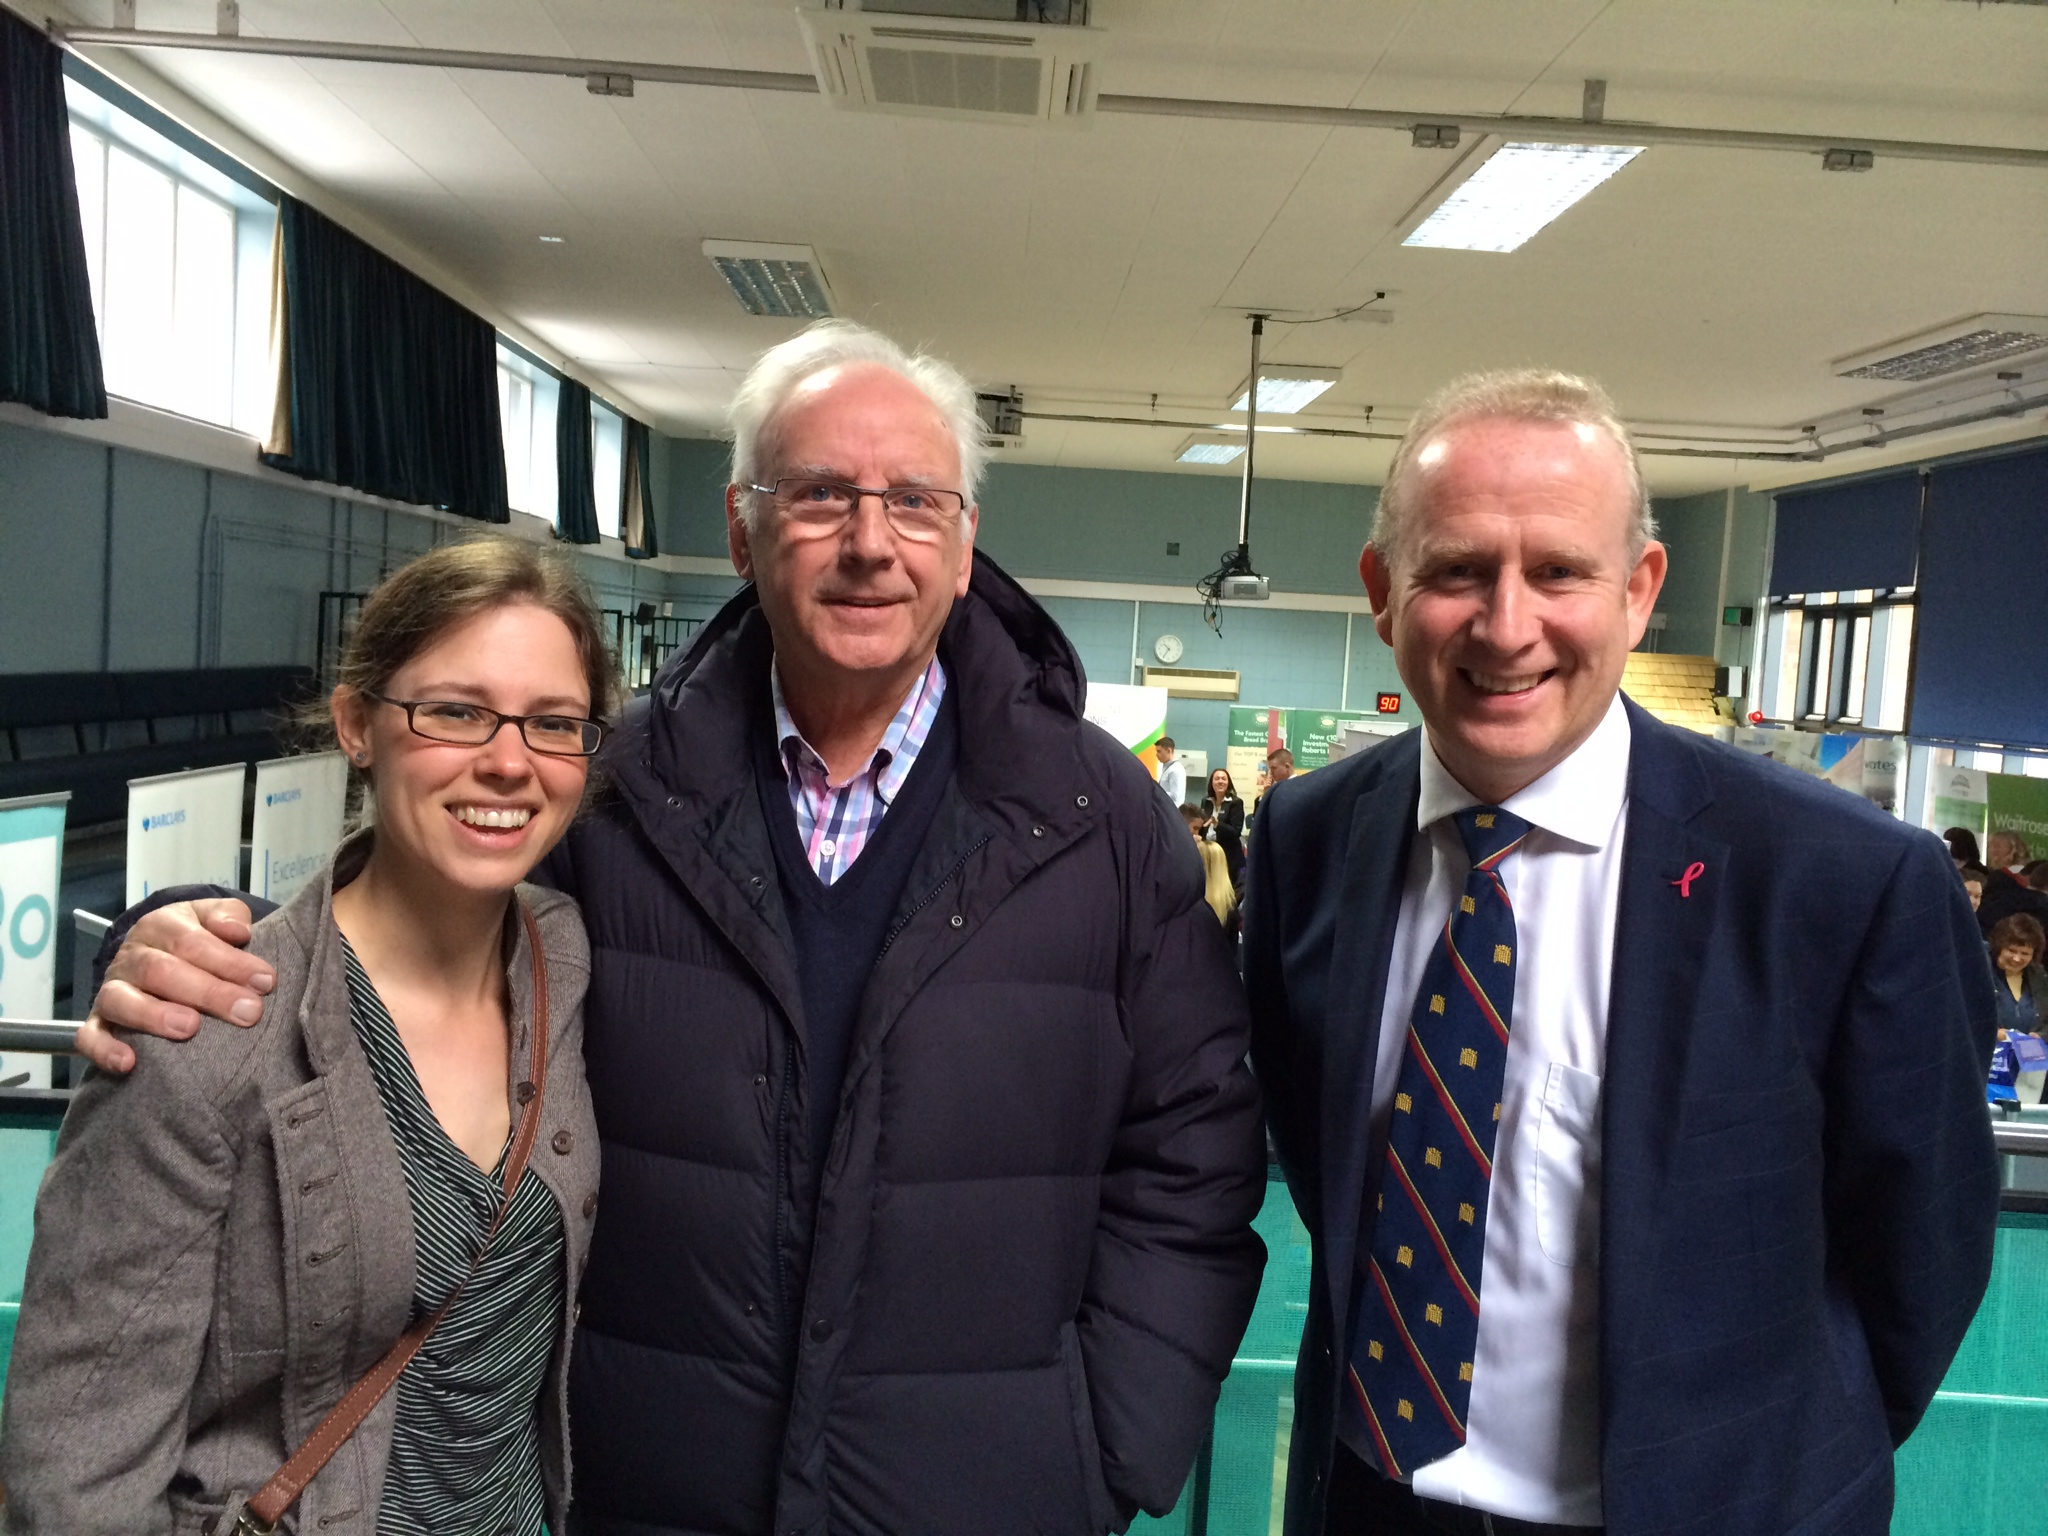 Guardian chief reporter Gina Bebbington with Pete Waterman and Weaver Vale MP Graham Evans at the jobs fair.